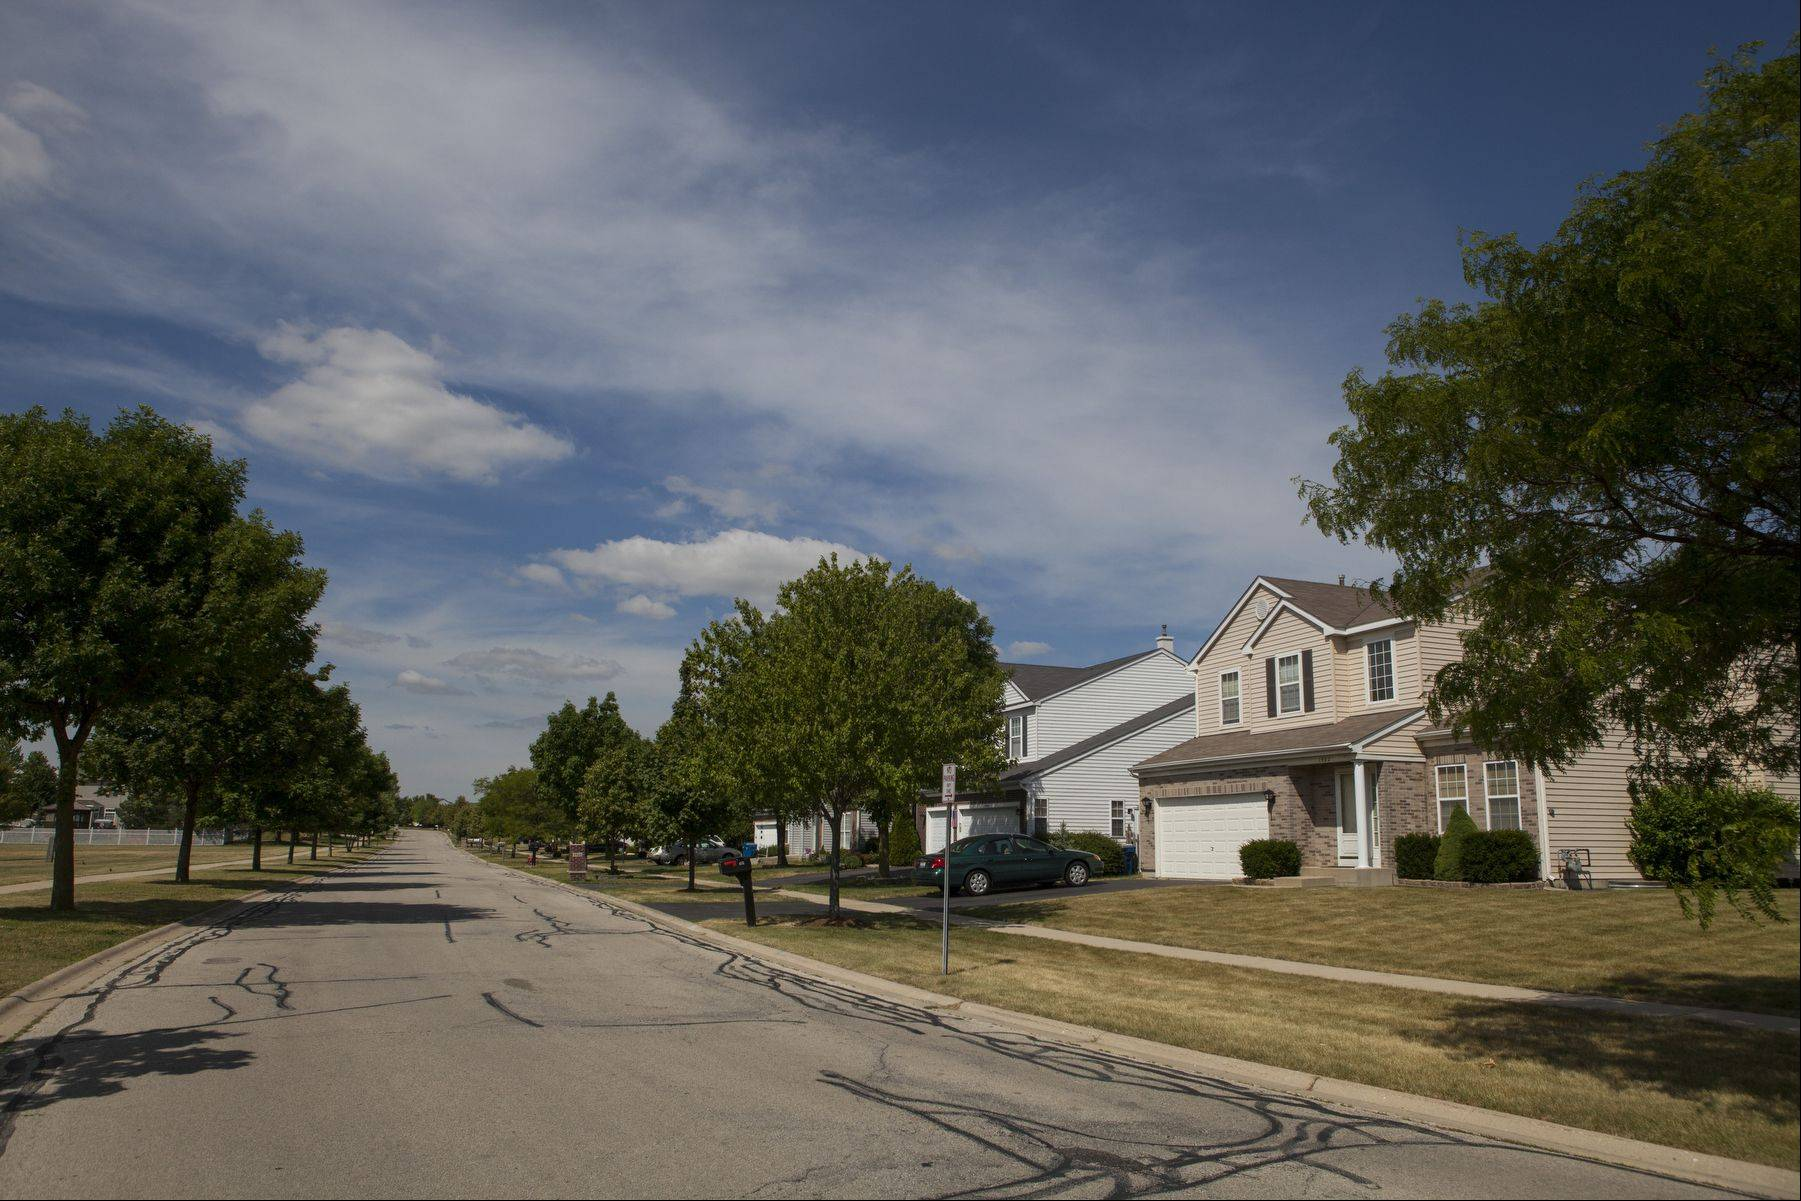 About 600 houses make up the WestRidge neighborhood, which was developed by Centex Homes in the 1990s.